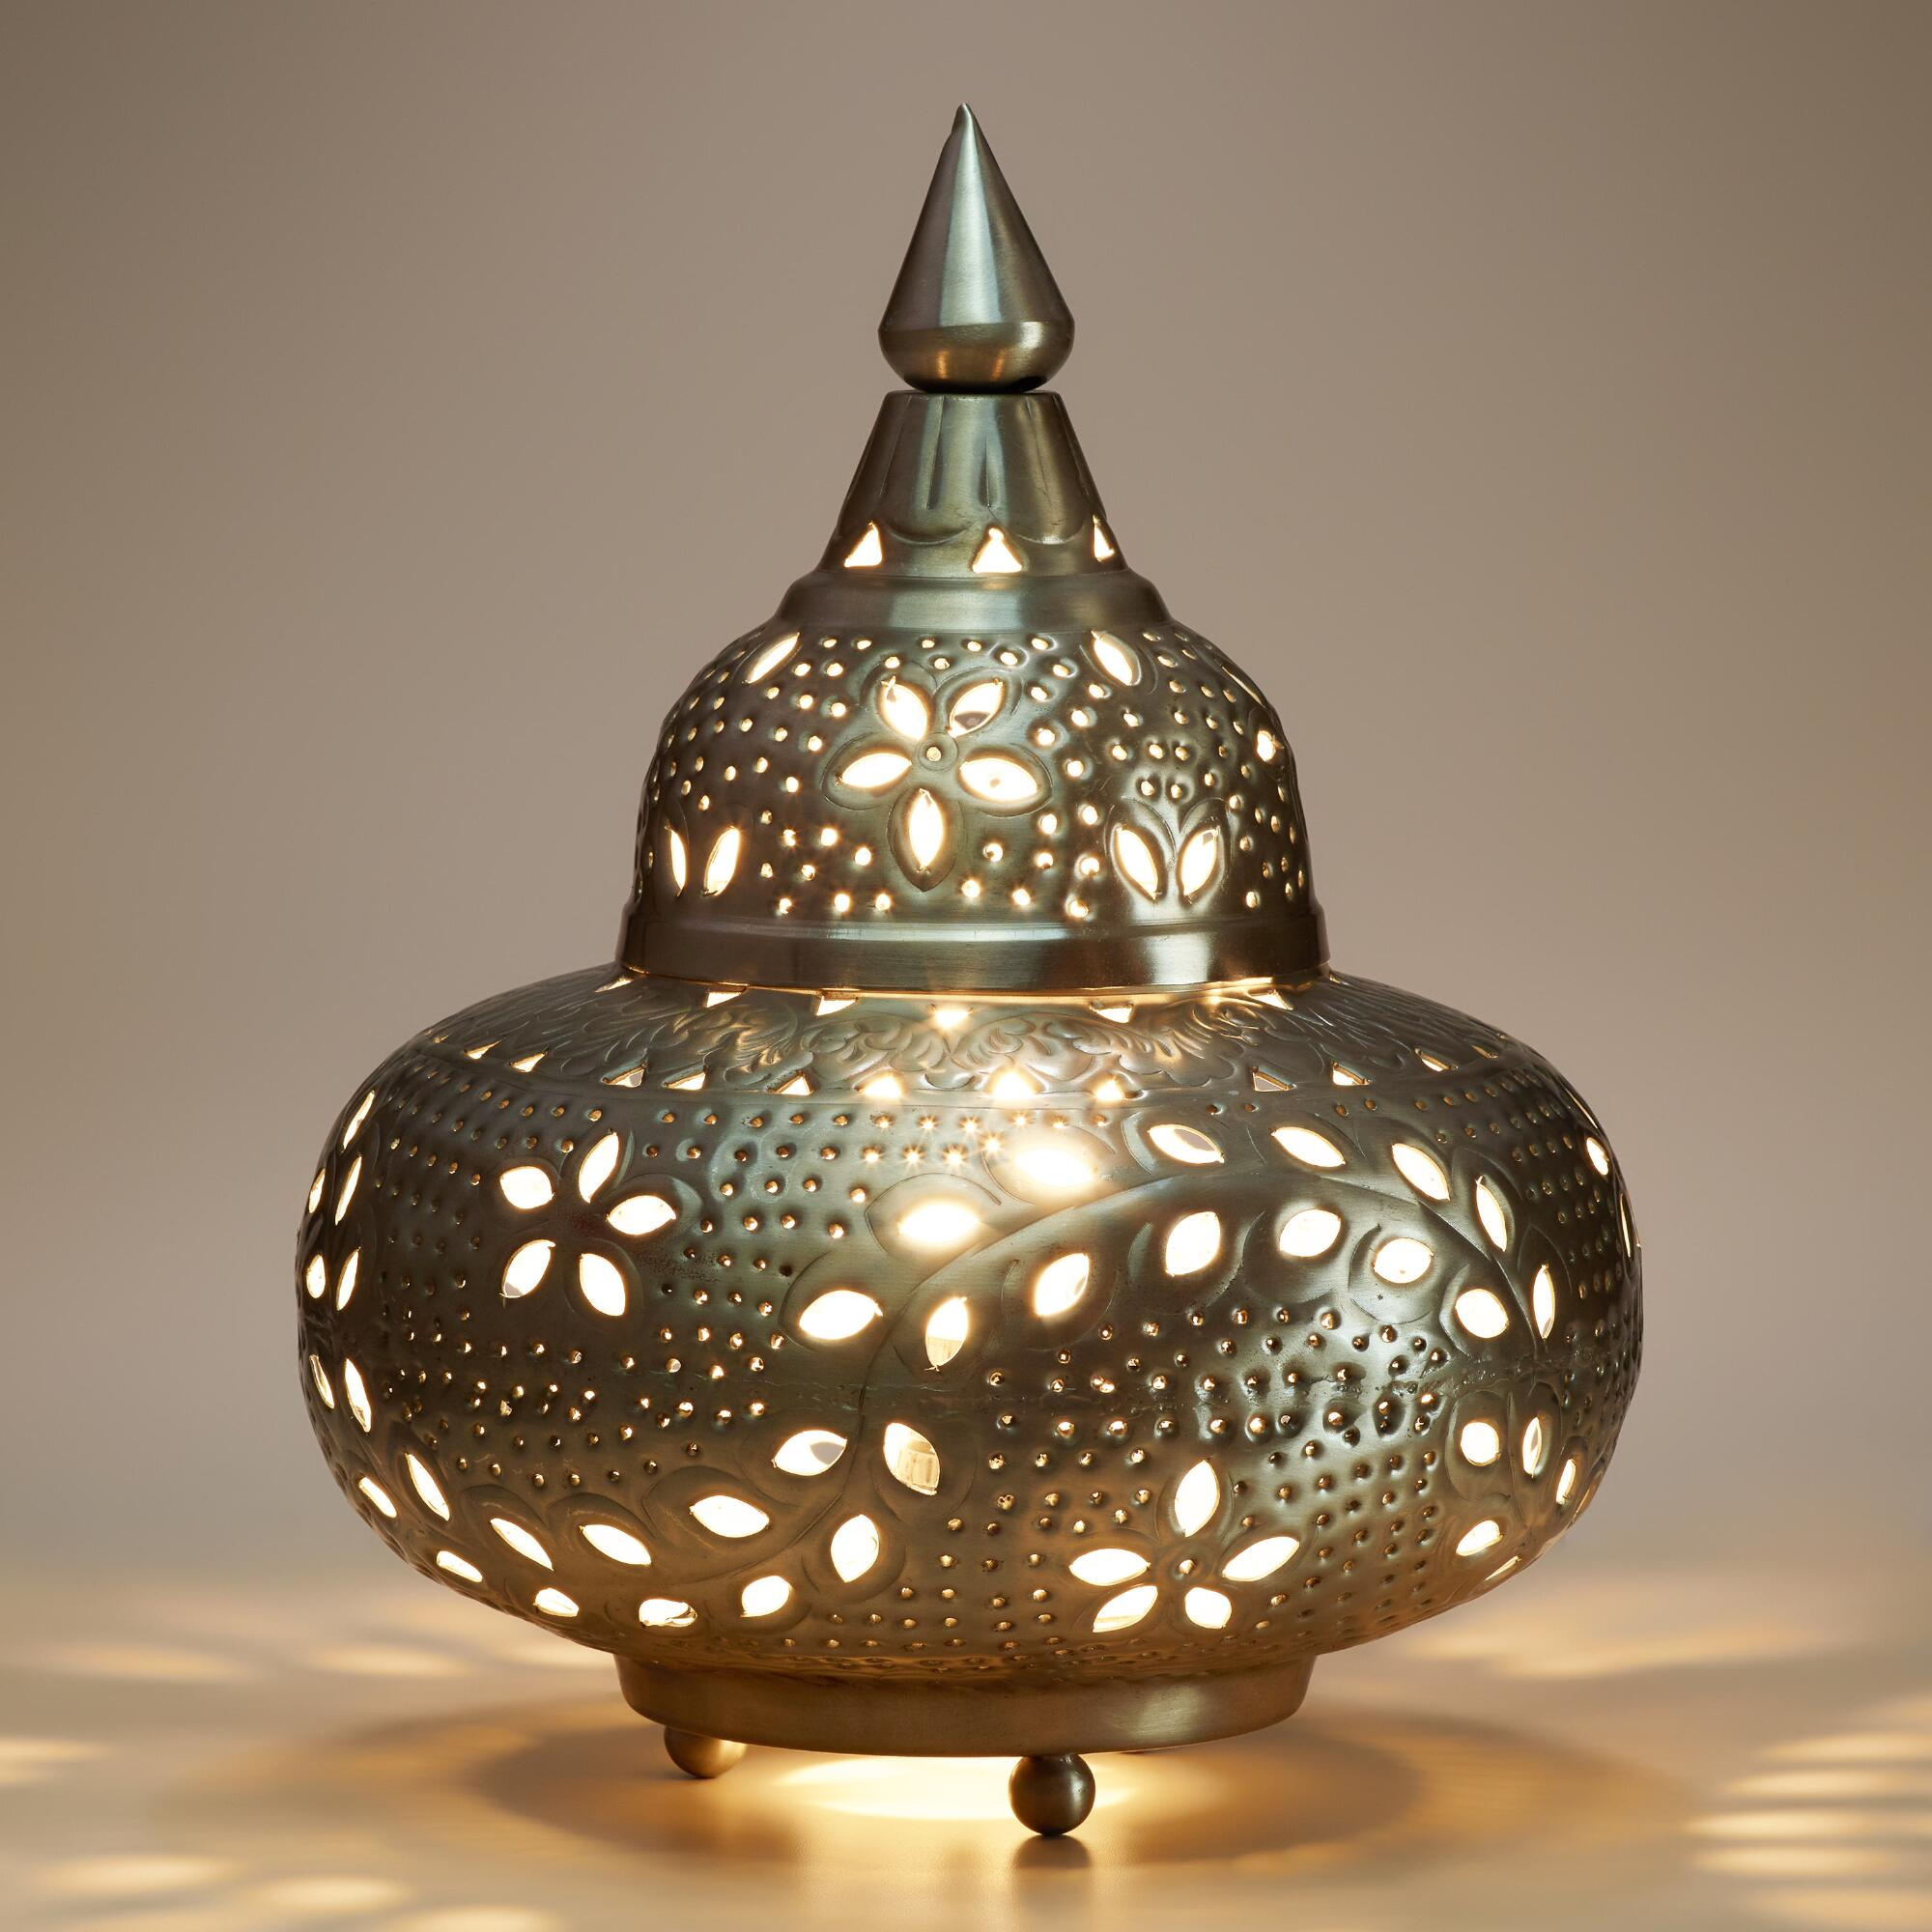 Small moroccan punched metal lamp world market for Orientalische metall lampen